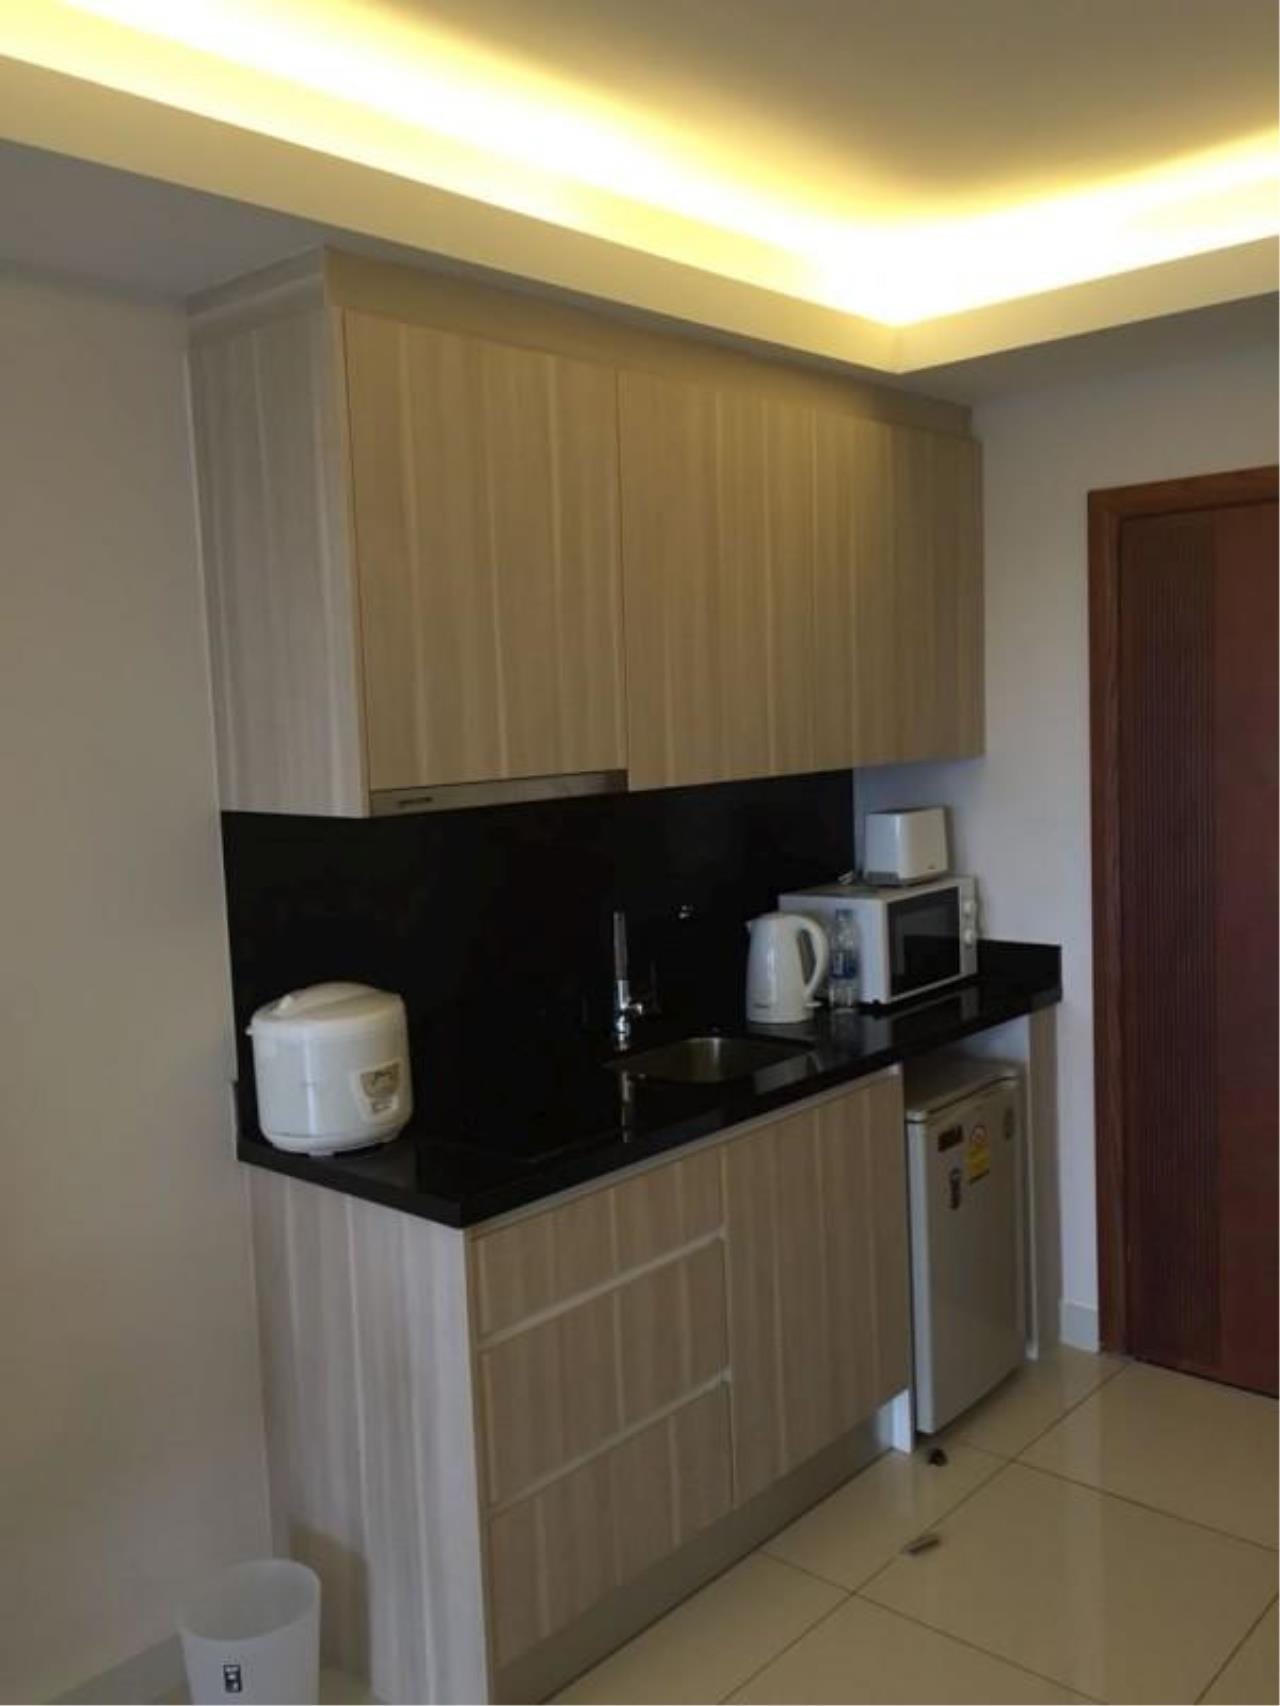 RE/MAX Town & Country Property Agency's 1 bedroom condo for sale or rent 4